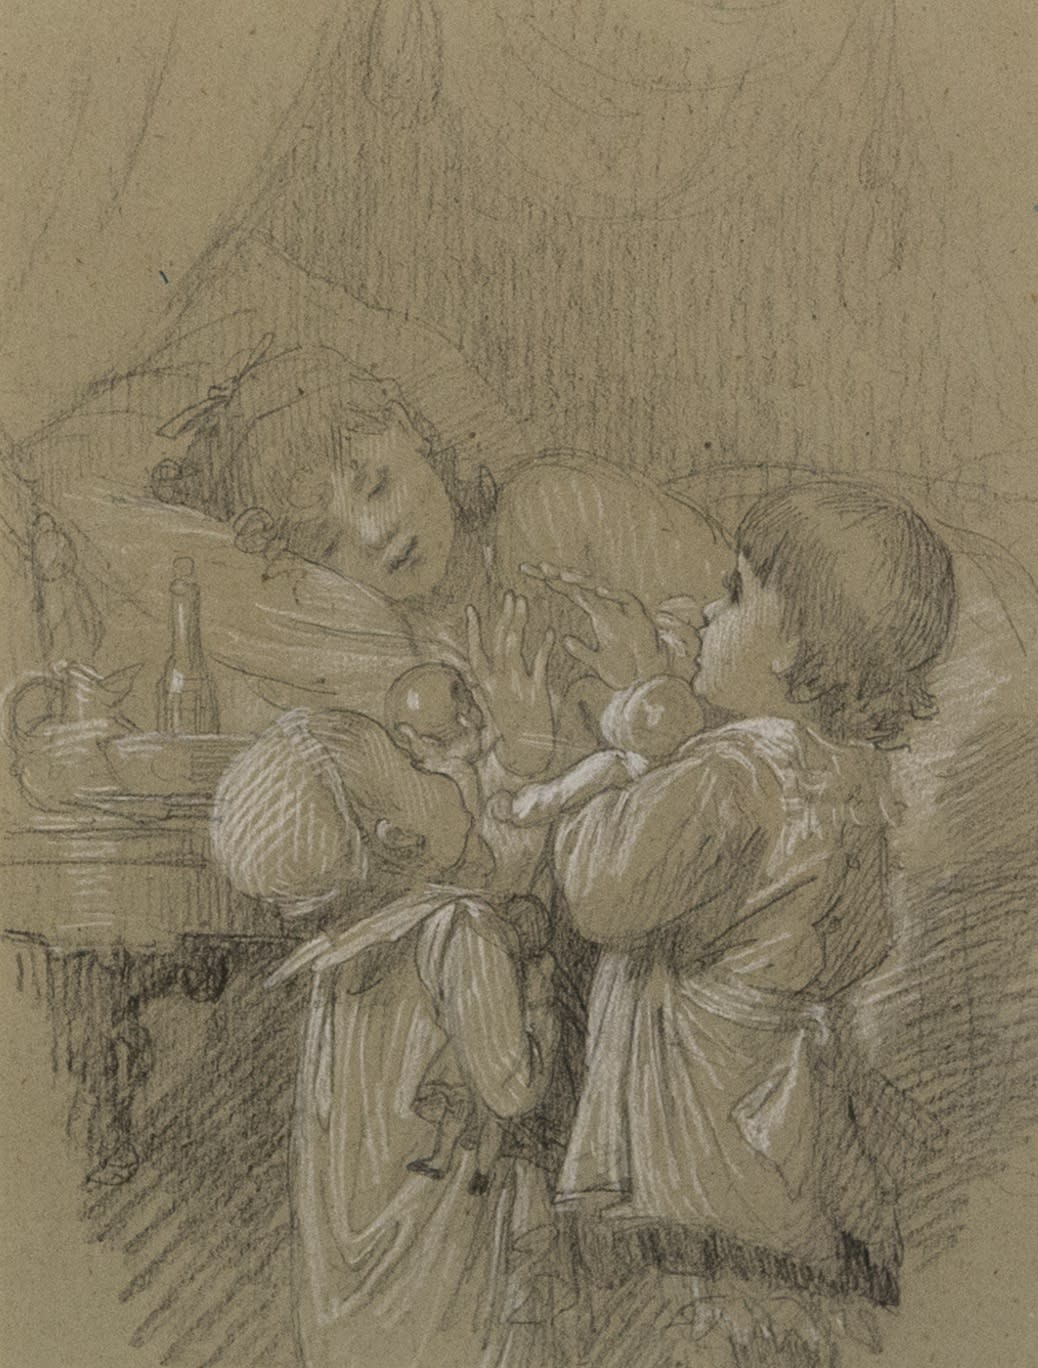 A Woman in Bed, with Two Children Bringing Gifts